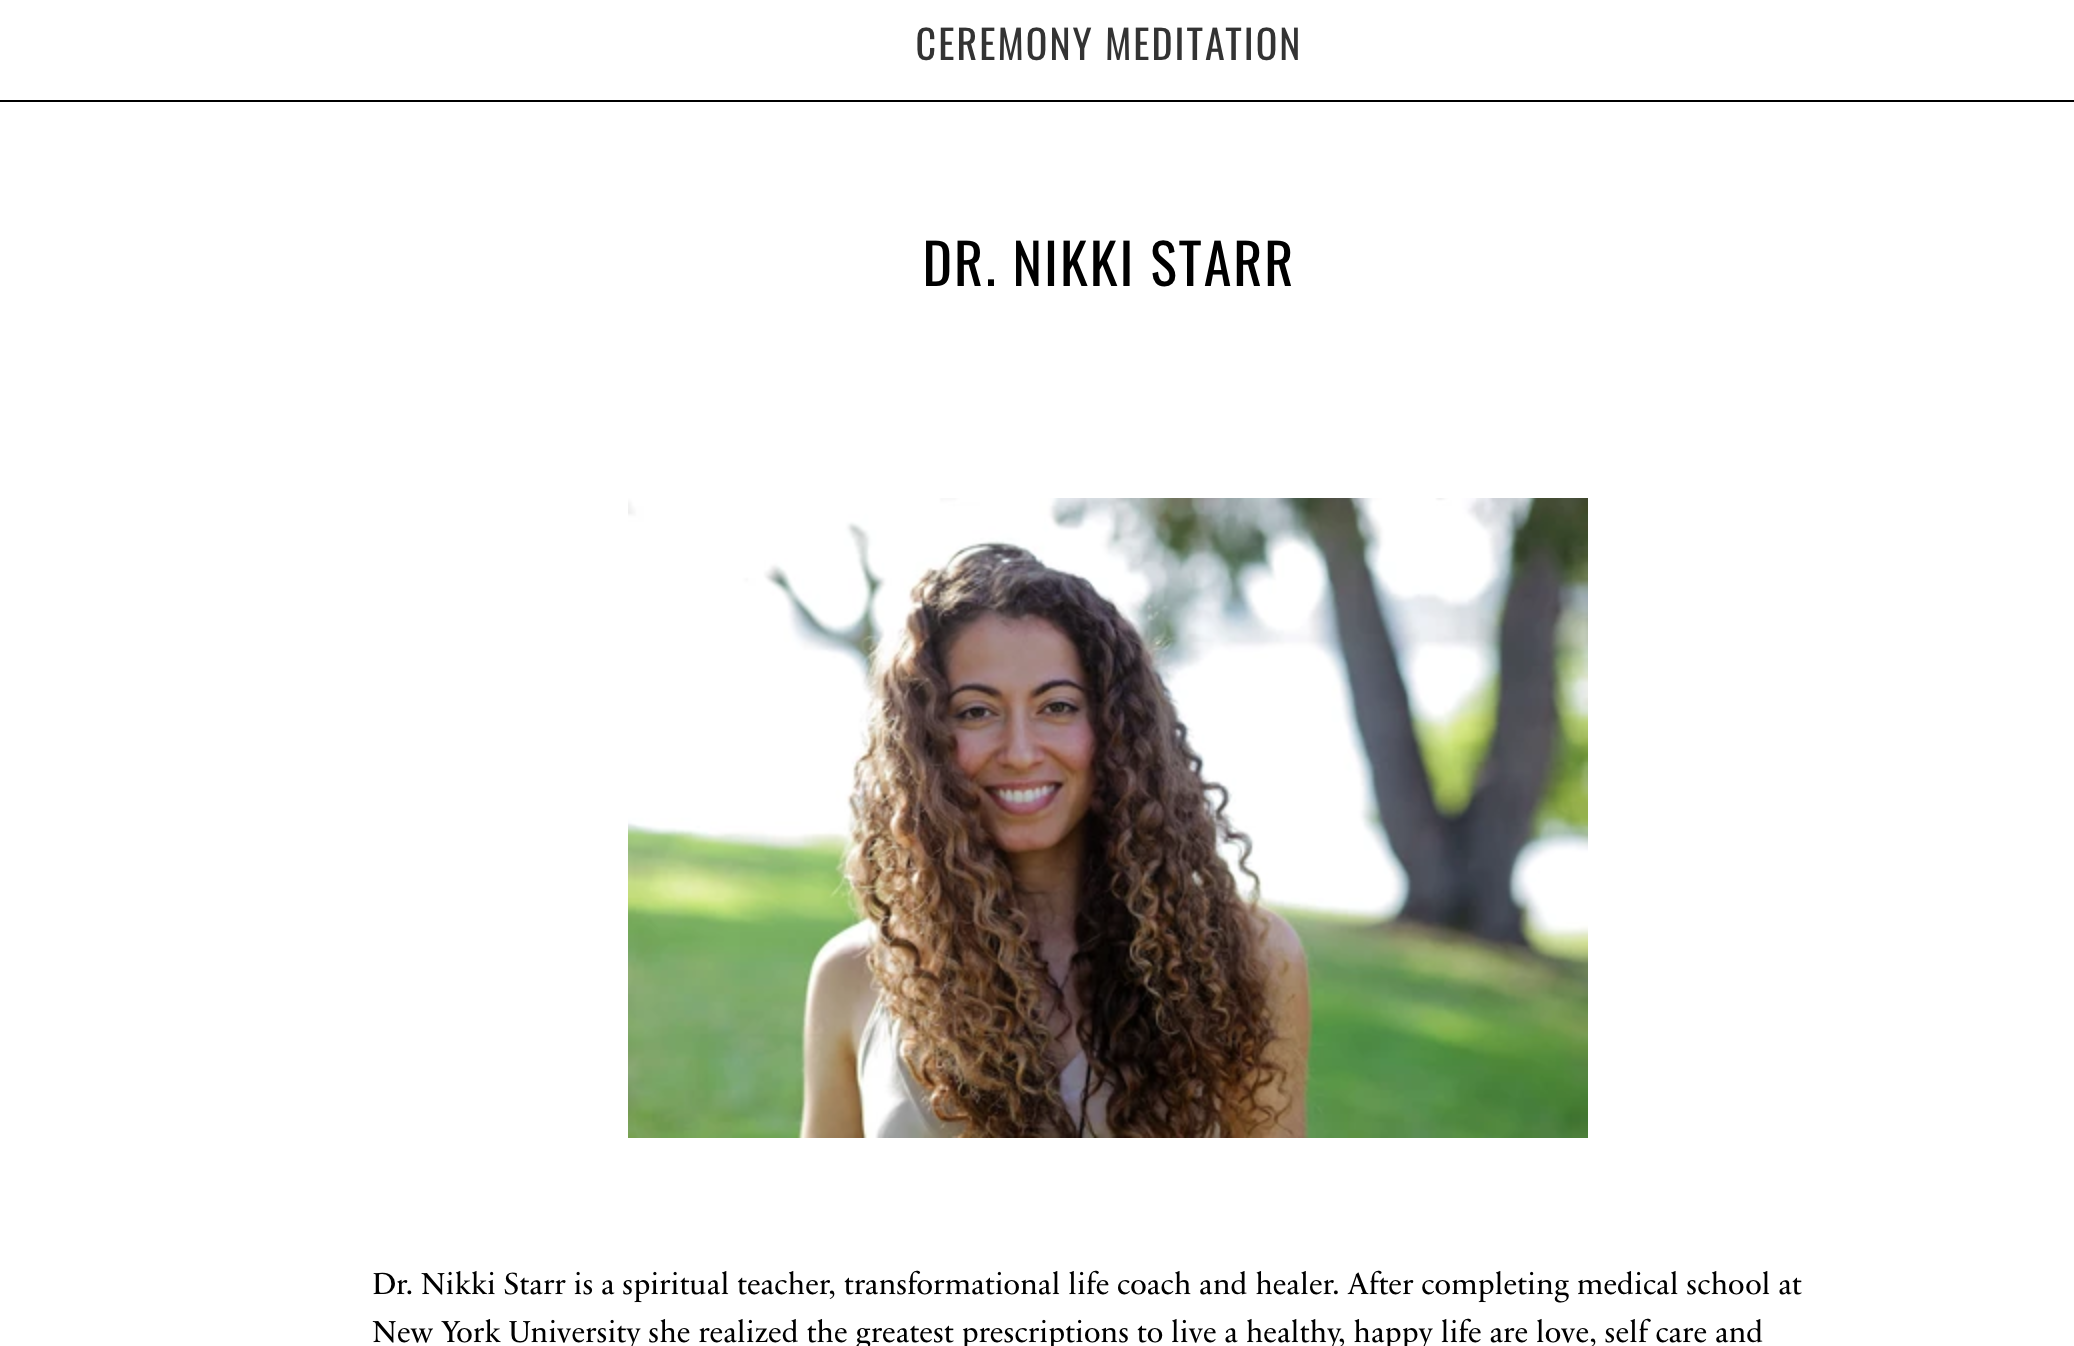 """Dr. Nikki Starr is a spiritual teacher, transformational life coach and healer. After completing medical school at New York University she realized the greatest prescriptions to live a healthy, happy life are love, self care and conscious living. With degrees also in Psychology and Nutrition, as well as being a certified yoga teacher, she works with people in a """"whole-istic"""" way targeting the mind, body and spirit to optimize all aspects of life."""